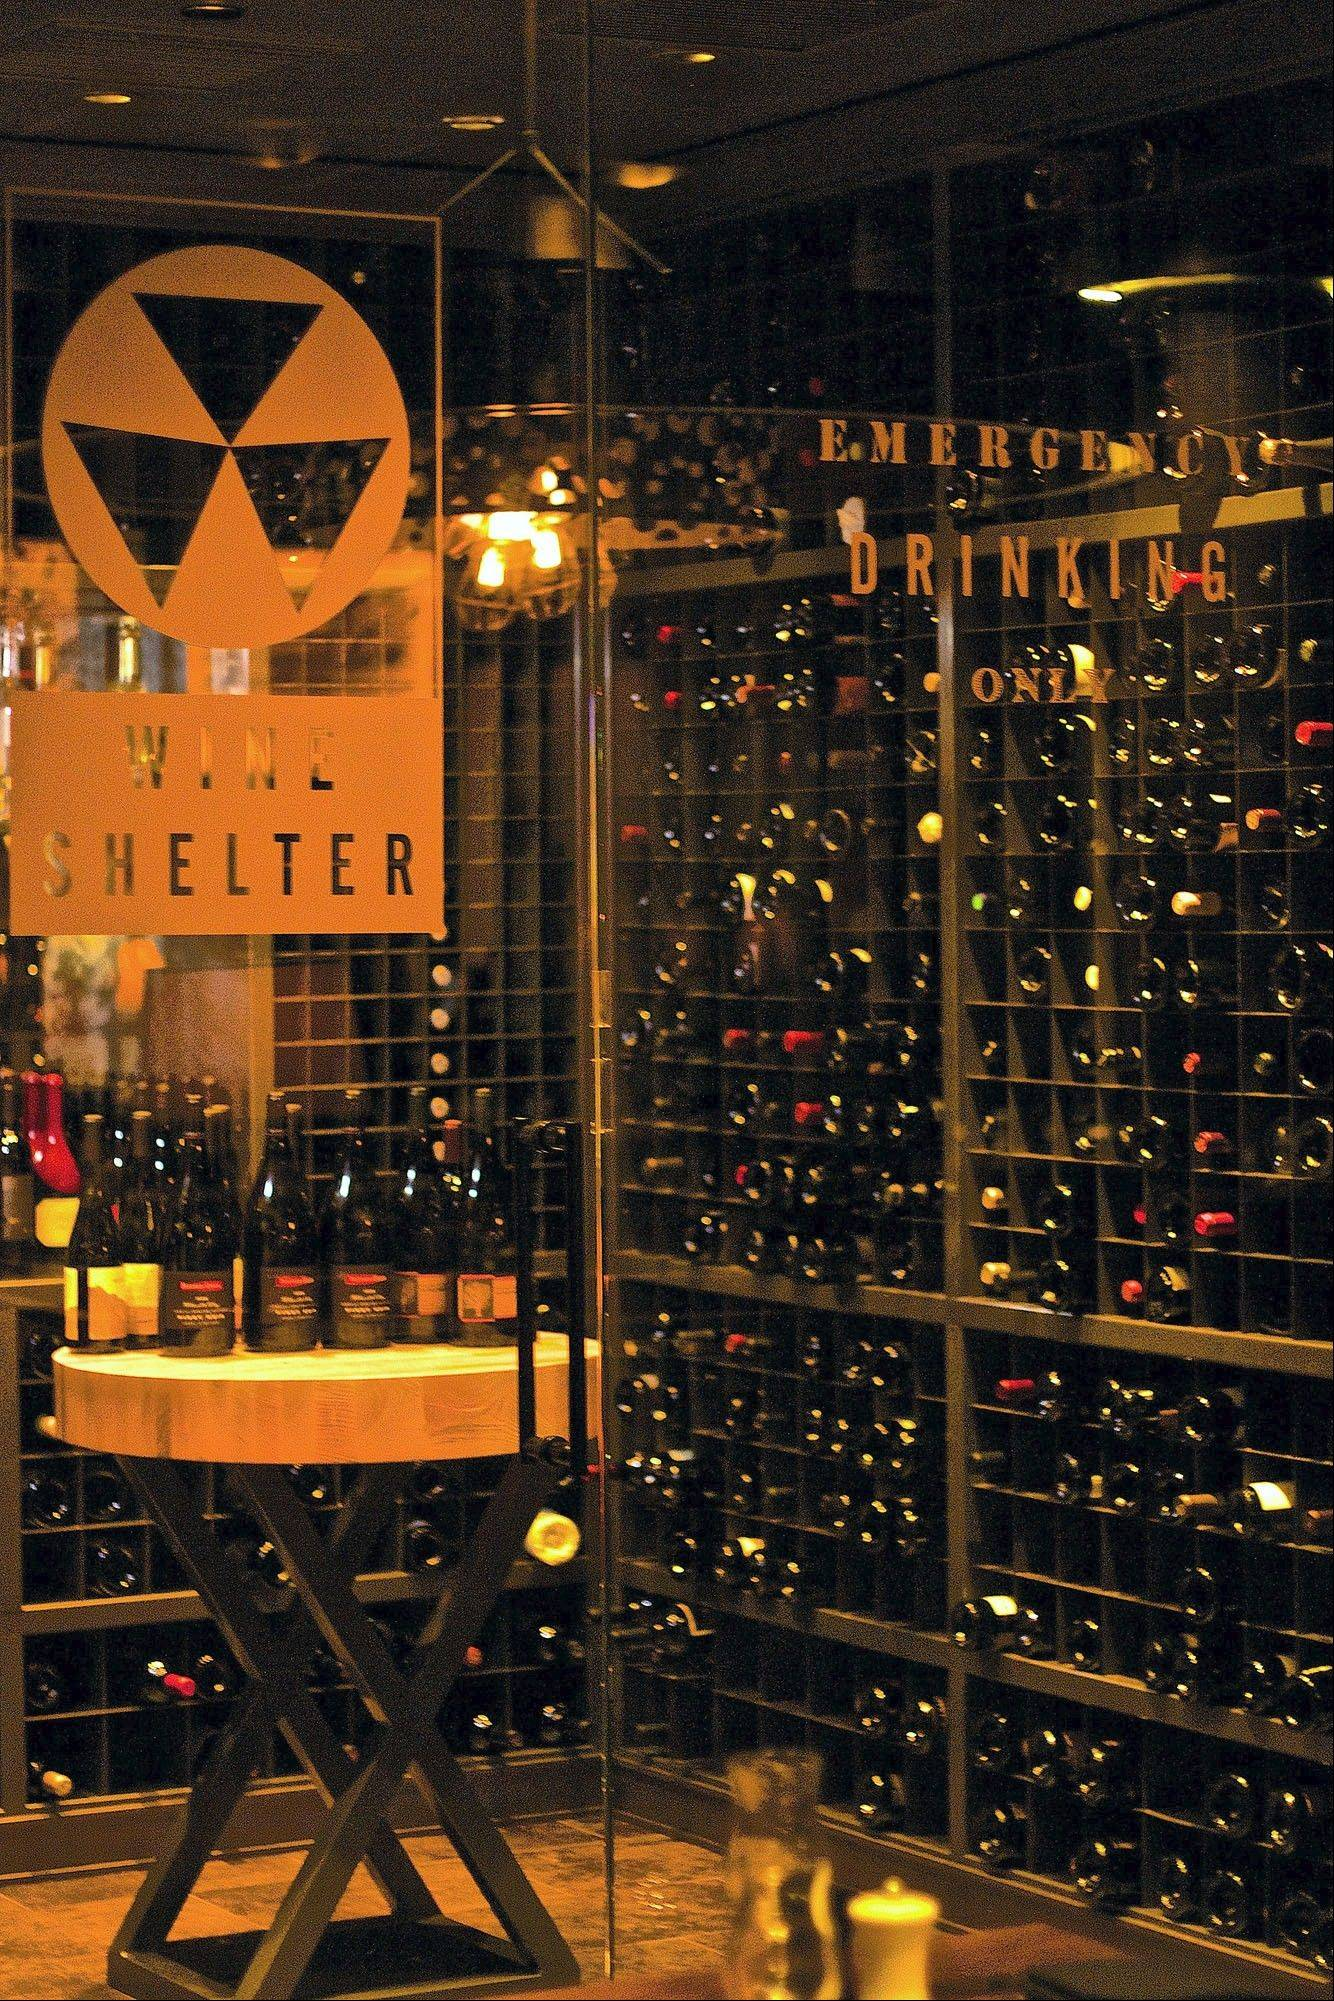 The temperature in the glass-enclosed wine cellar at Public House in Las Vegas holds at 55 degrees for the proper aging of the wines.